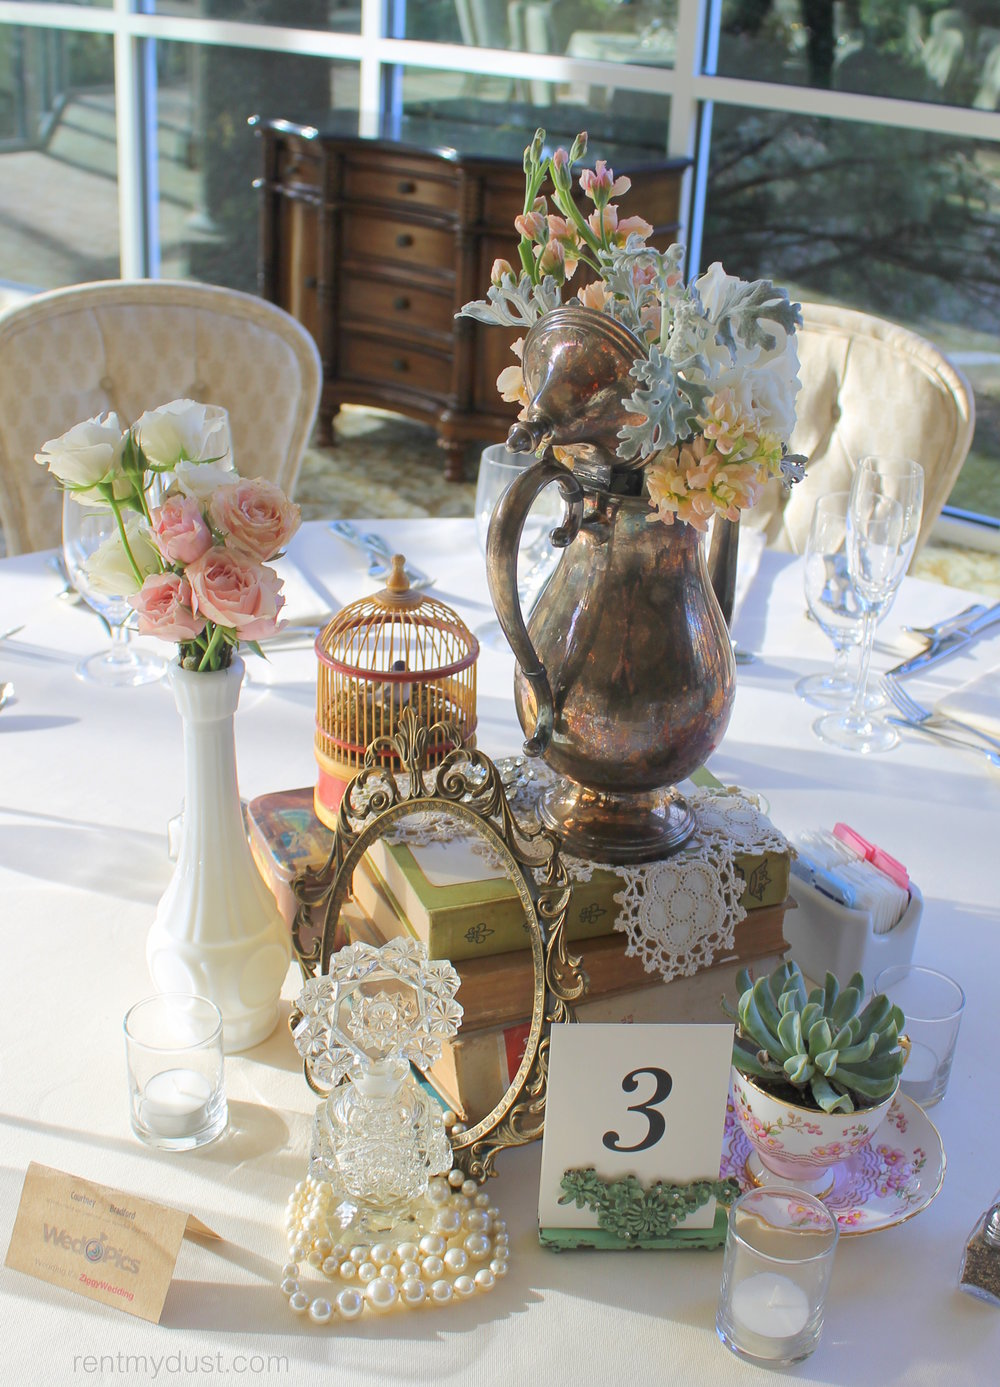 rent my dust_tablescape5.jpg